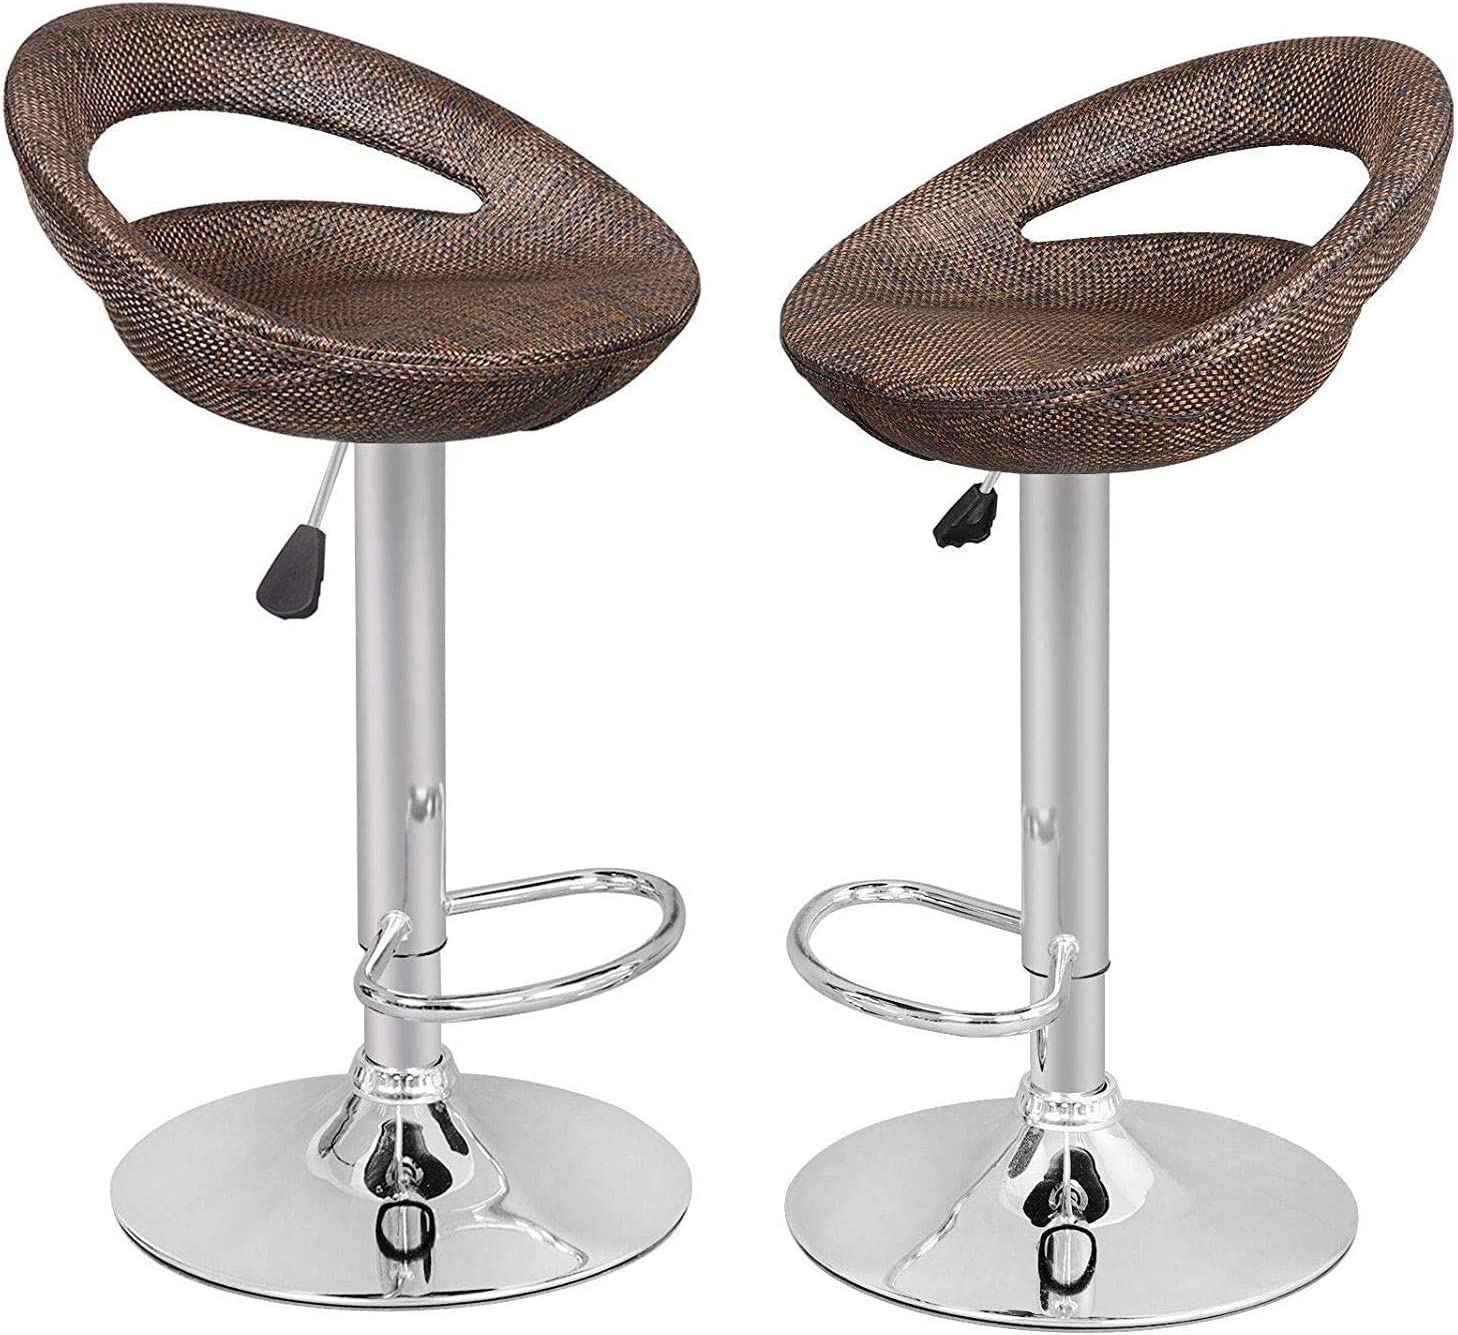 Adjustable Pub Swivel Barstool Hydraulic Patio Barstool Indoor/Outdoor W/Open Back and Chrome Footrest